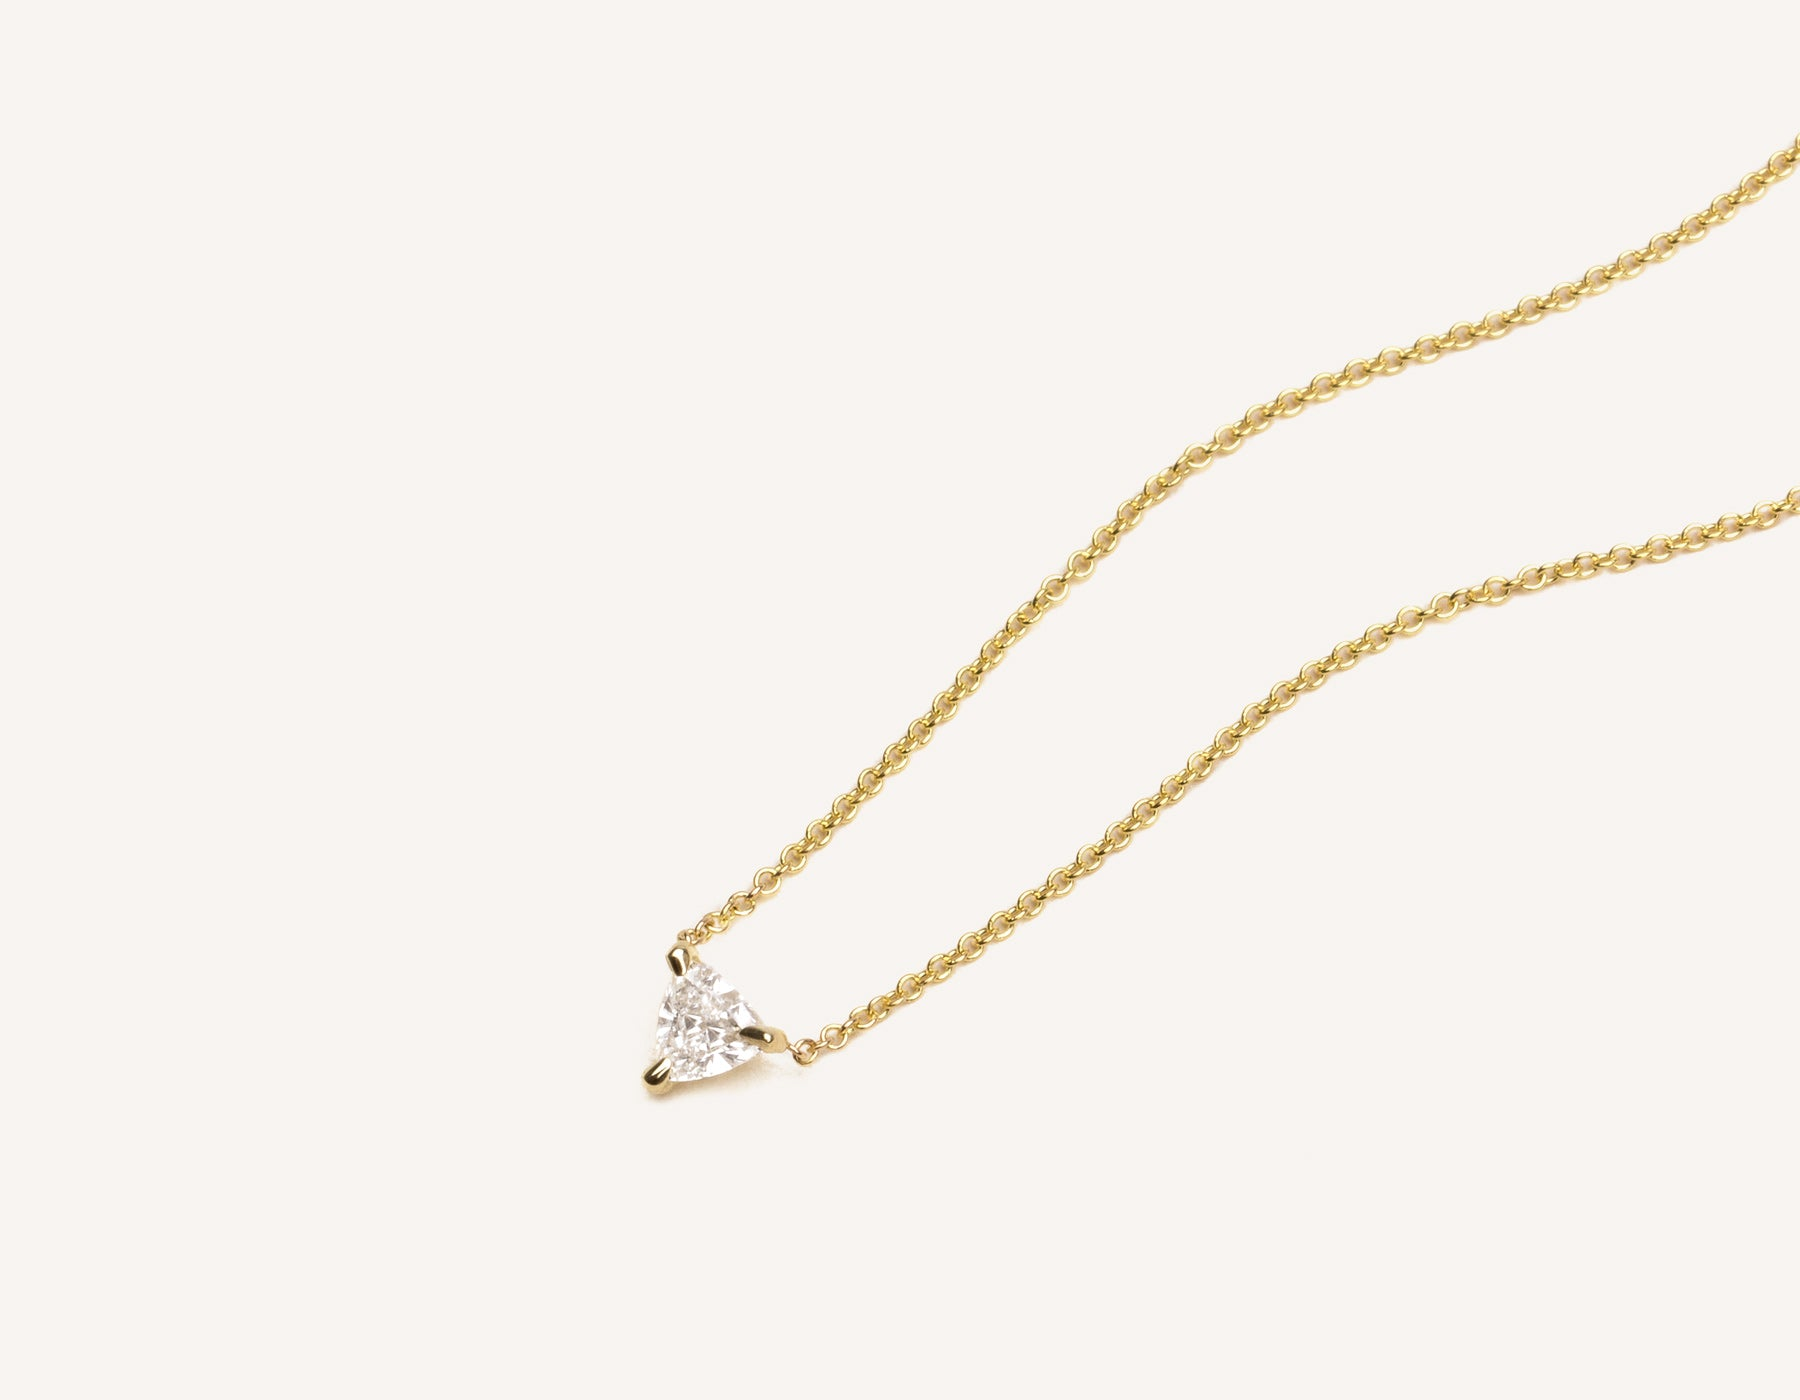 Close up of 14k solid gold Trillion Diamond Necklace with triangle diamond on simple chain by Vrai & Oro modern minimalist jewelry, 14K Yellow Gold